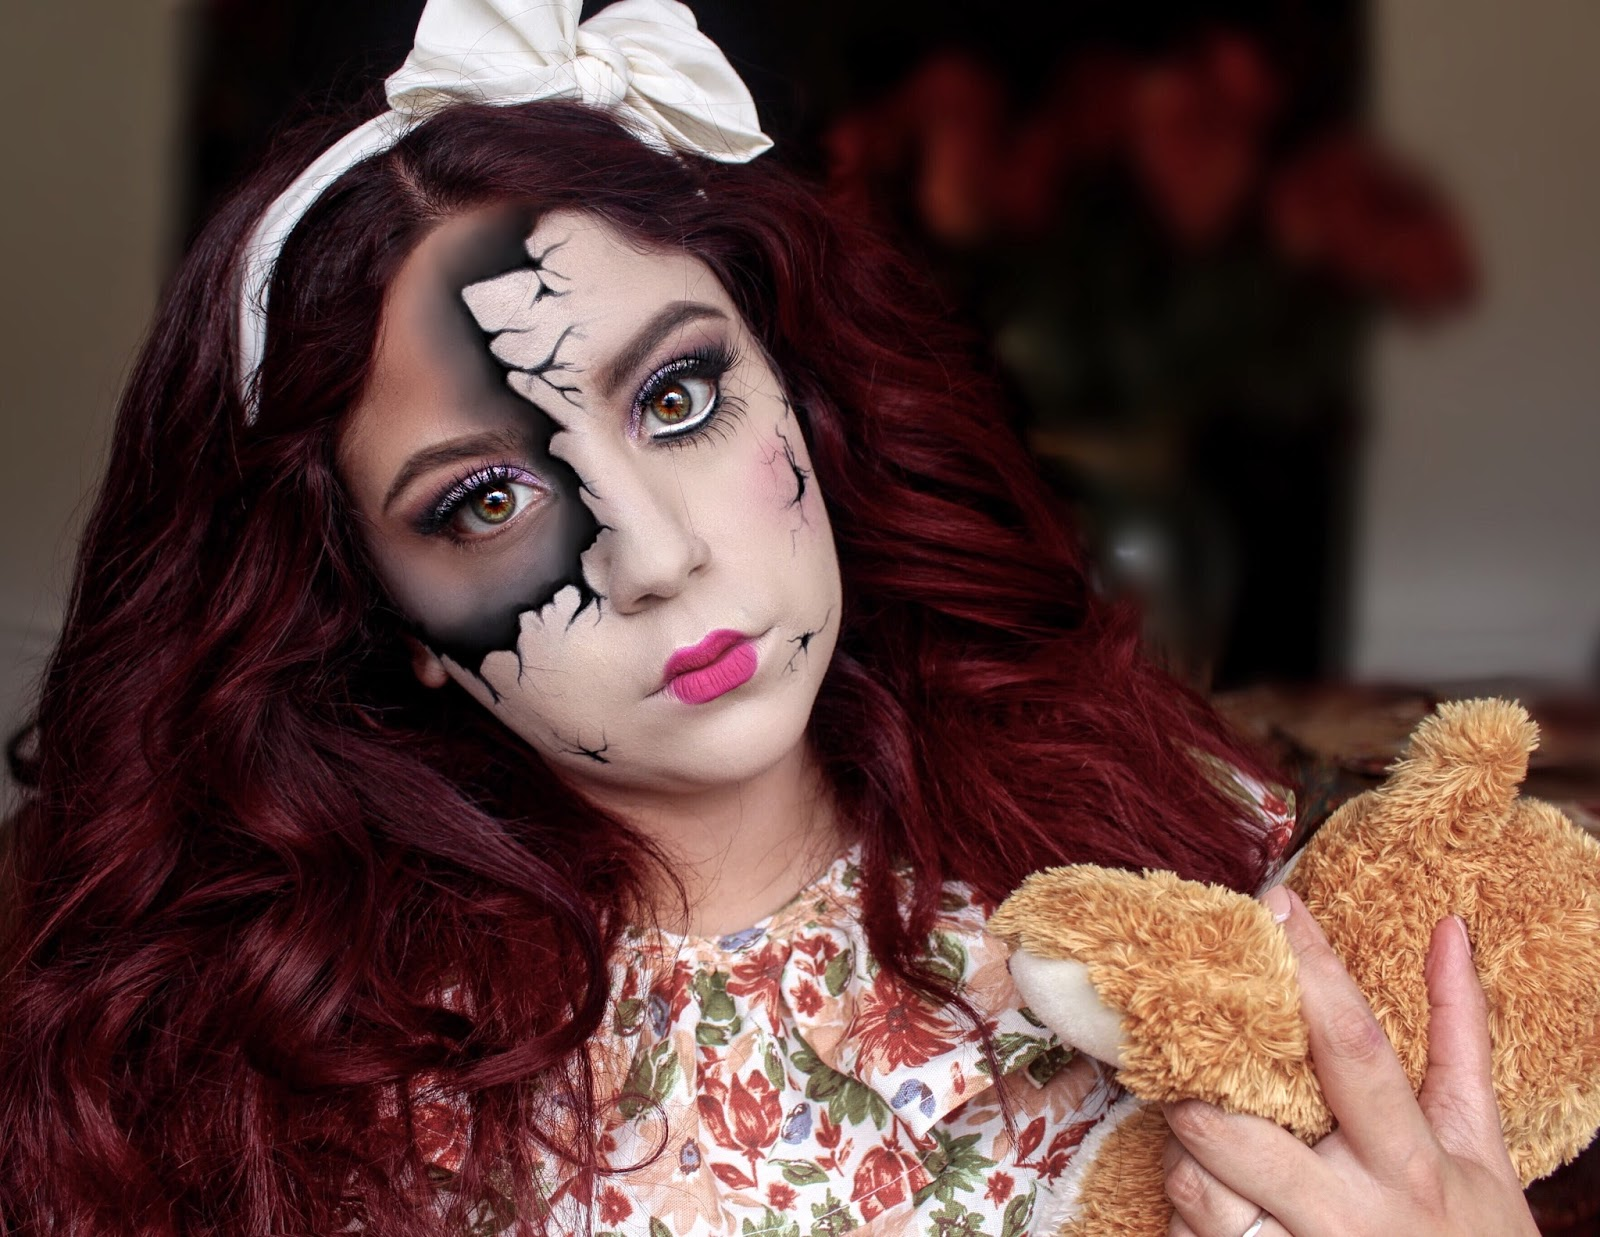 halloween makeup: broken doll | nati vergara: littlemissnati